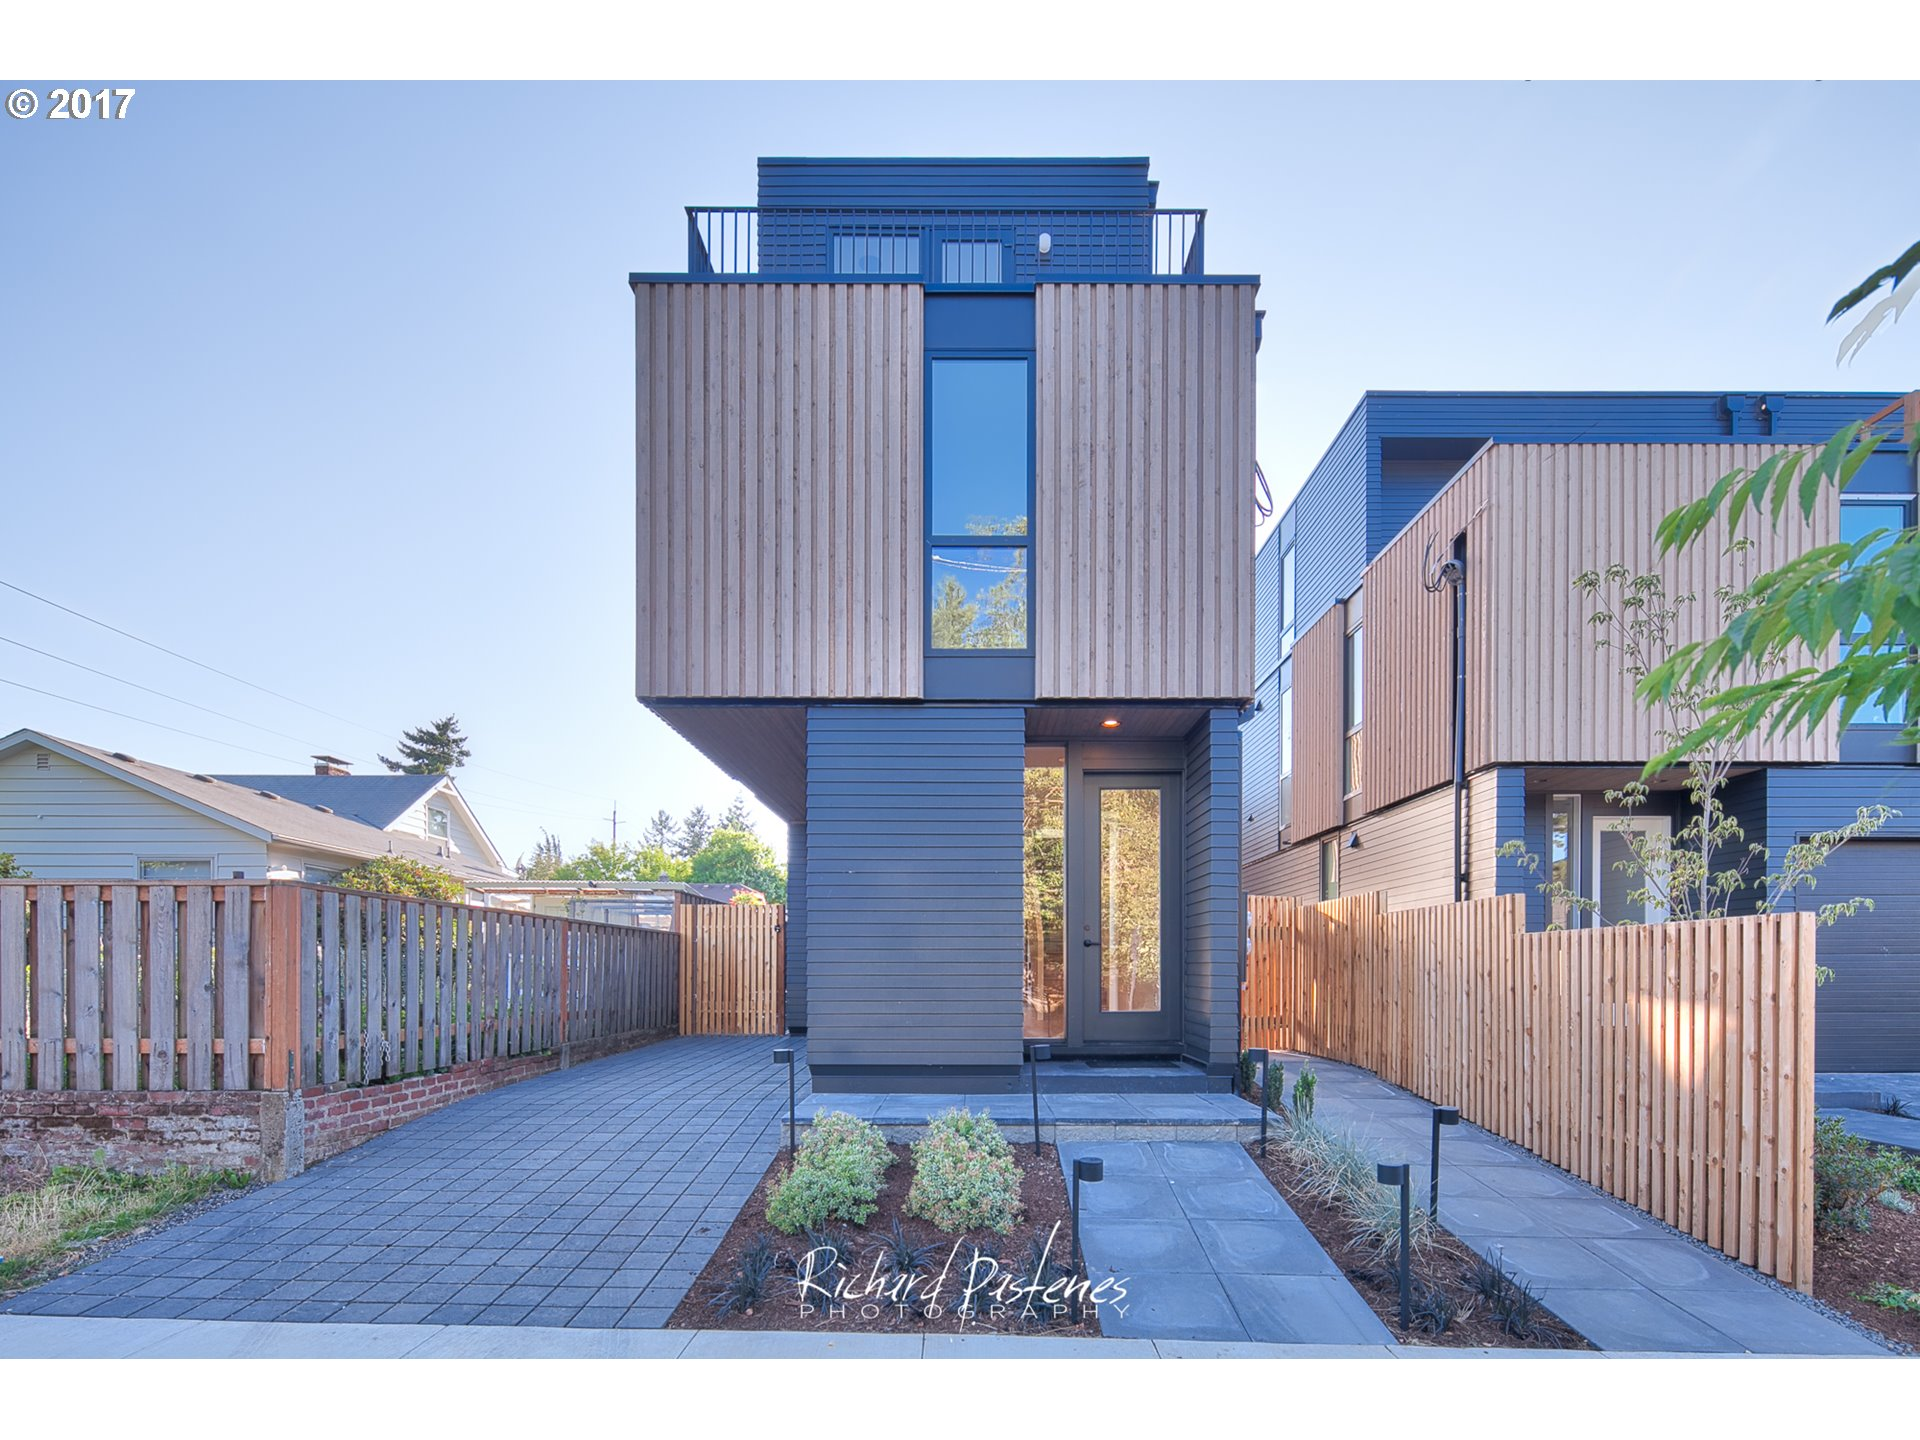 In the heart of coveted Arbor Lodge, this brand-new modern home + ADU perfectly achieves a minimalist, serene space in the heart of bustling North Portland. Bright and tastefully designed, with floor-to-ceiling windows and oak hardwood flooring throughout. You'll find comfort and convenience in this 3 bed, 2.5 bath sleek, sophisticated home located just a few blocks to restaurants, shopping and MAX.